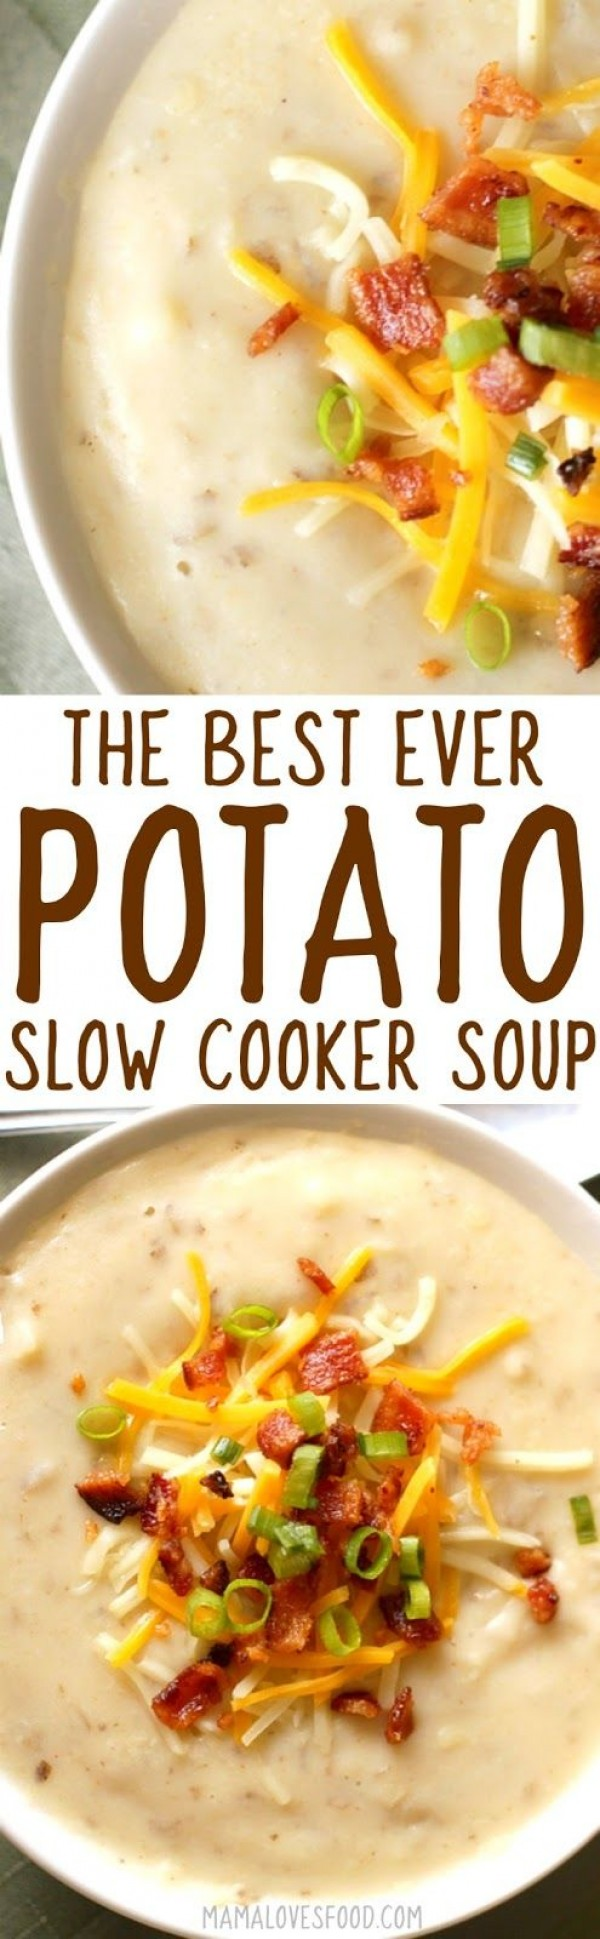 Get the recipe Potato Slow Cooker Soup @recipes_to_go